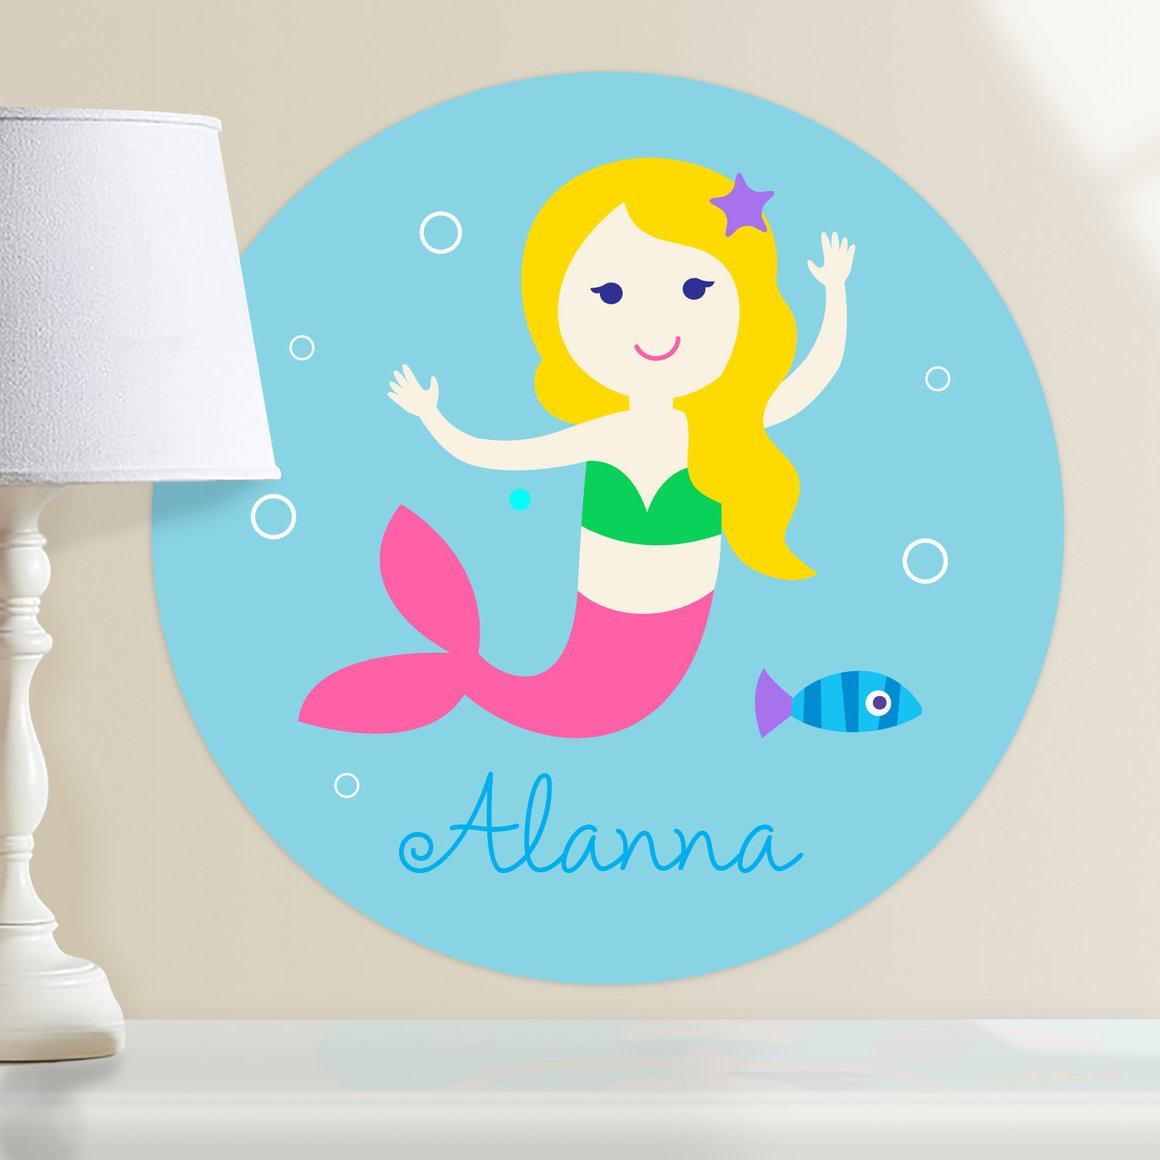 Mermaids (Light Skin, Blonde Hair) Personalized Kids Wall Dotz Decal